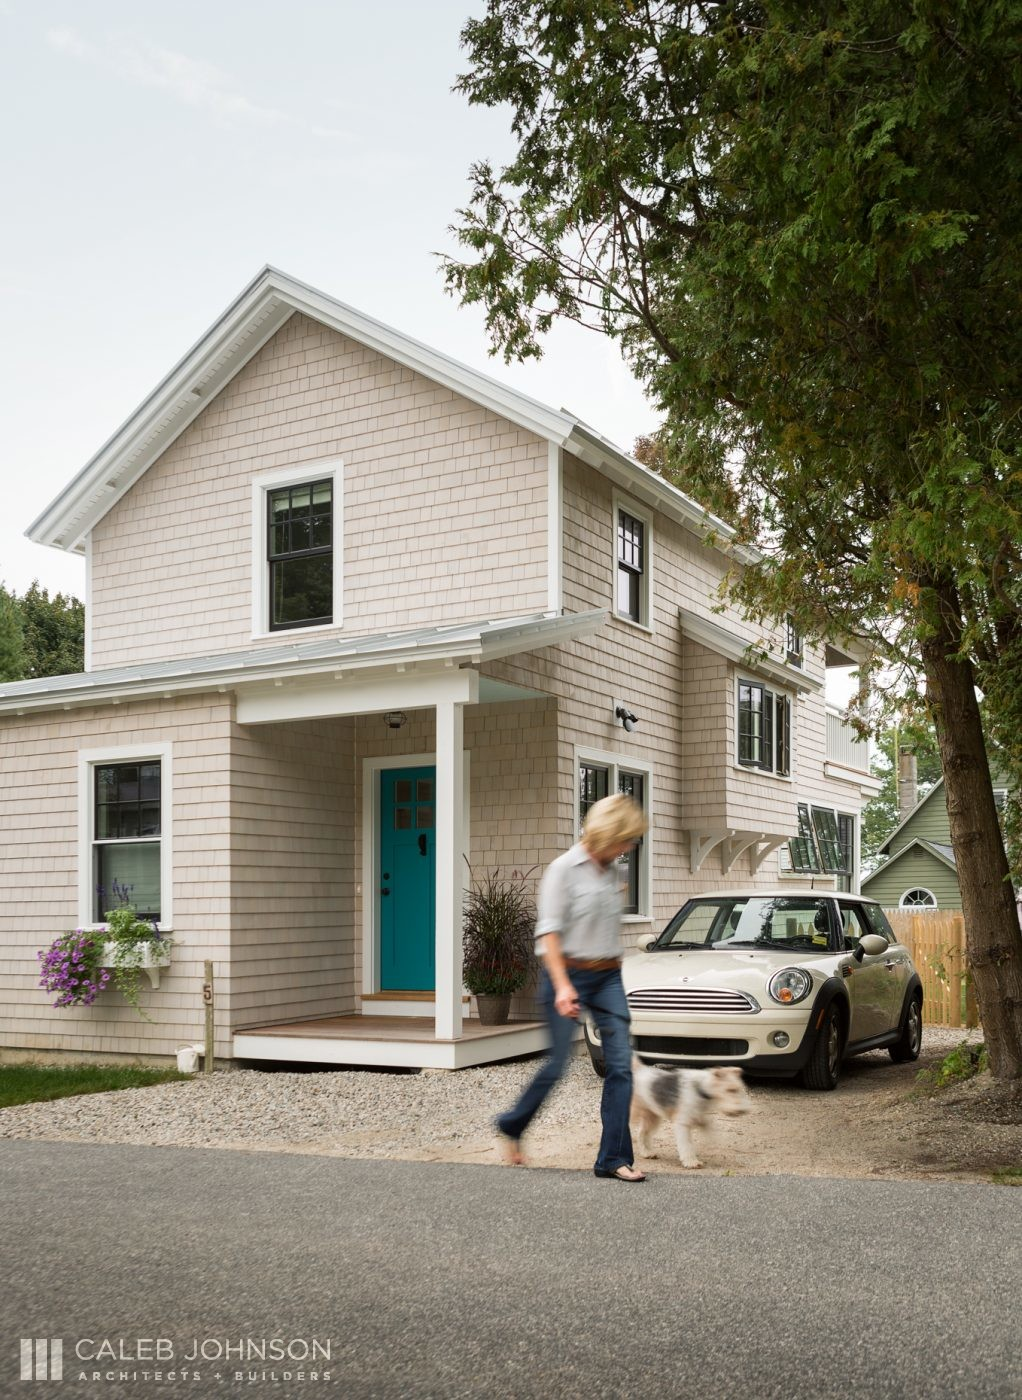 Residential - Caleb Johnson Architects + Builders